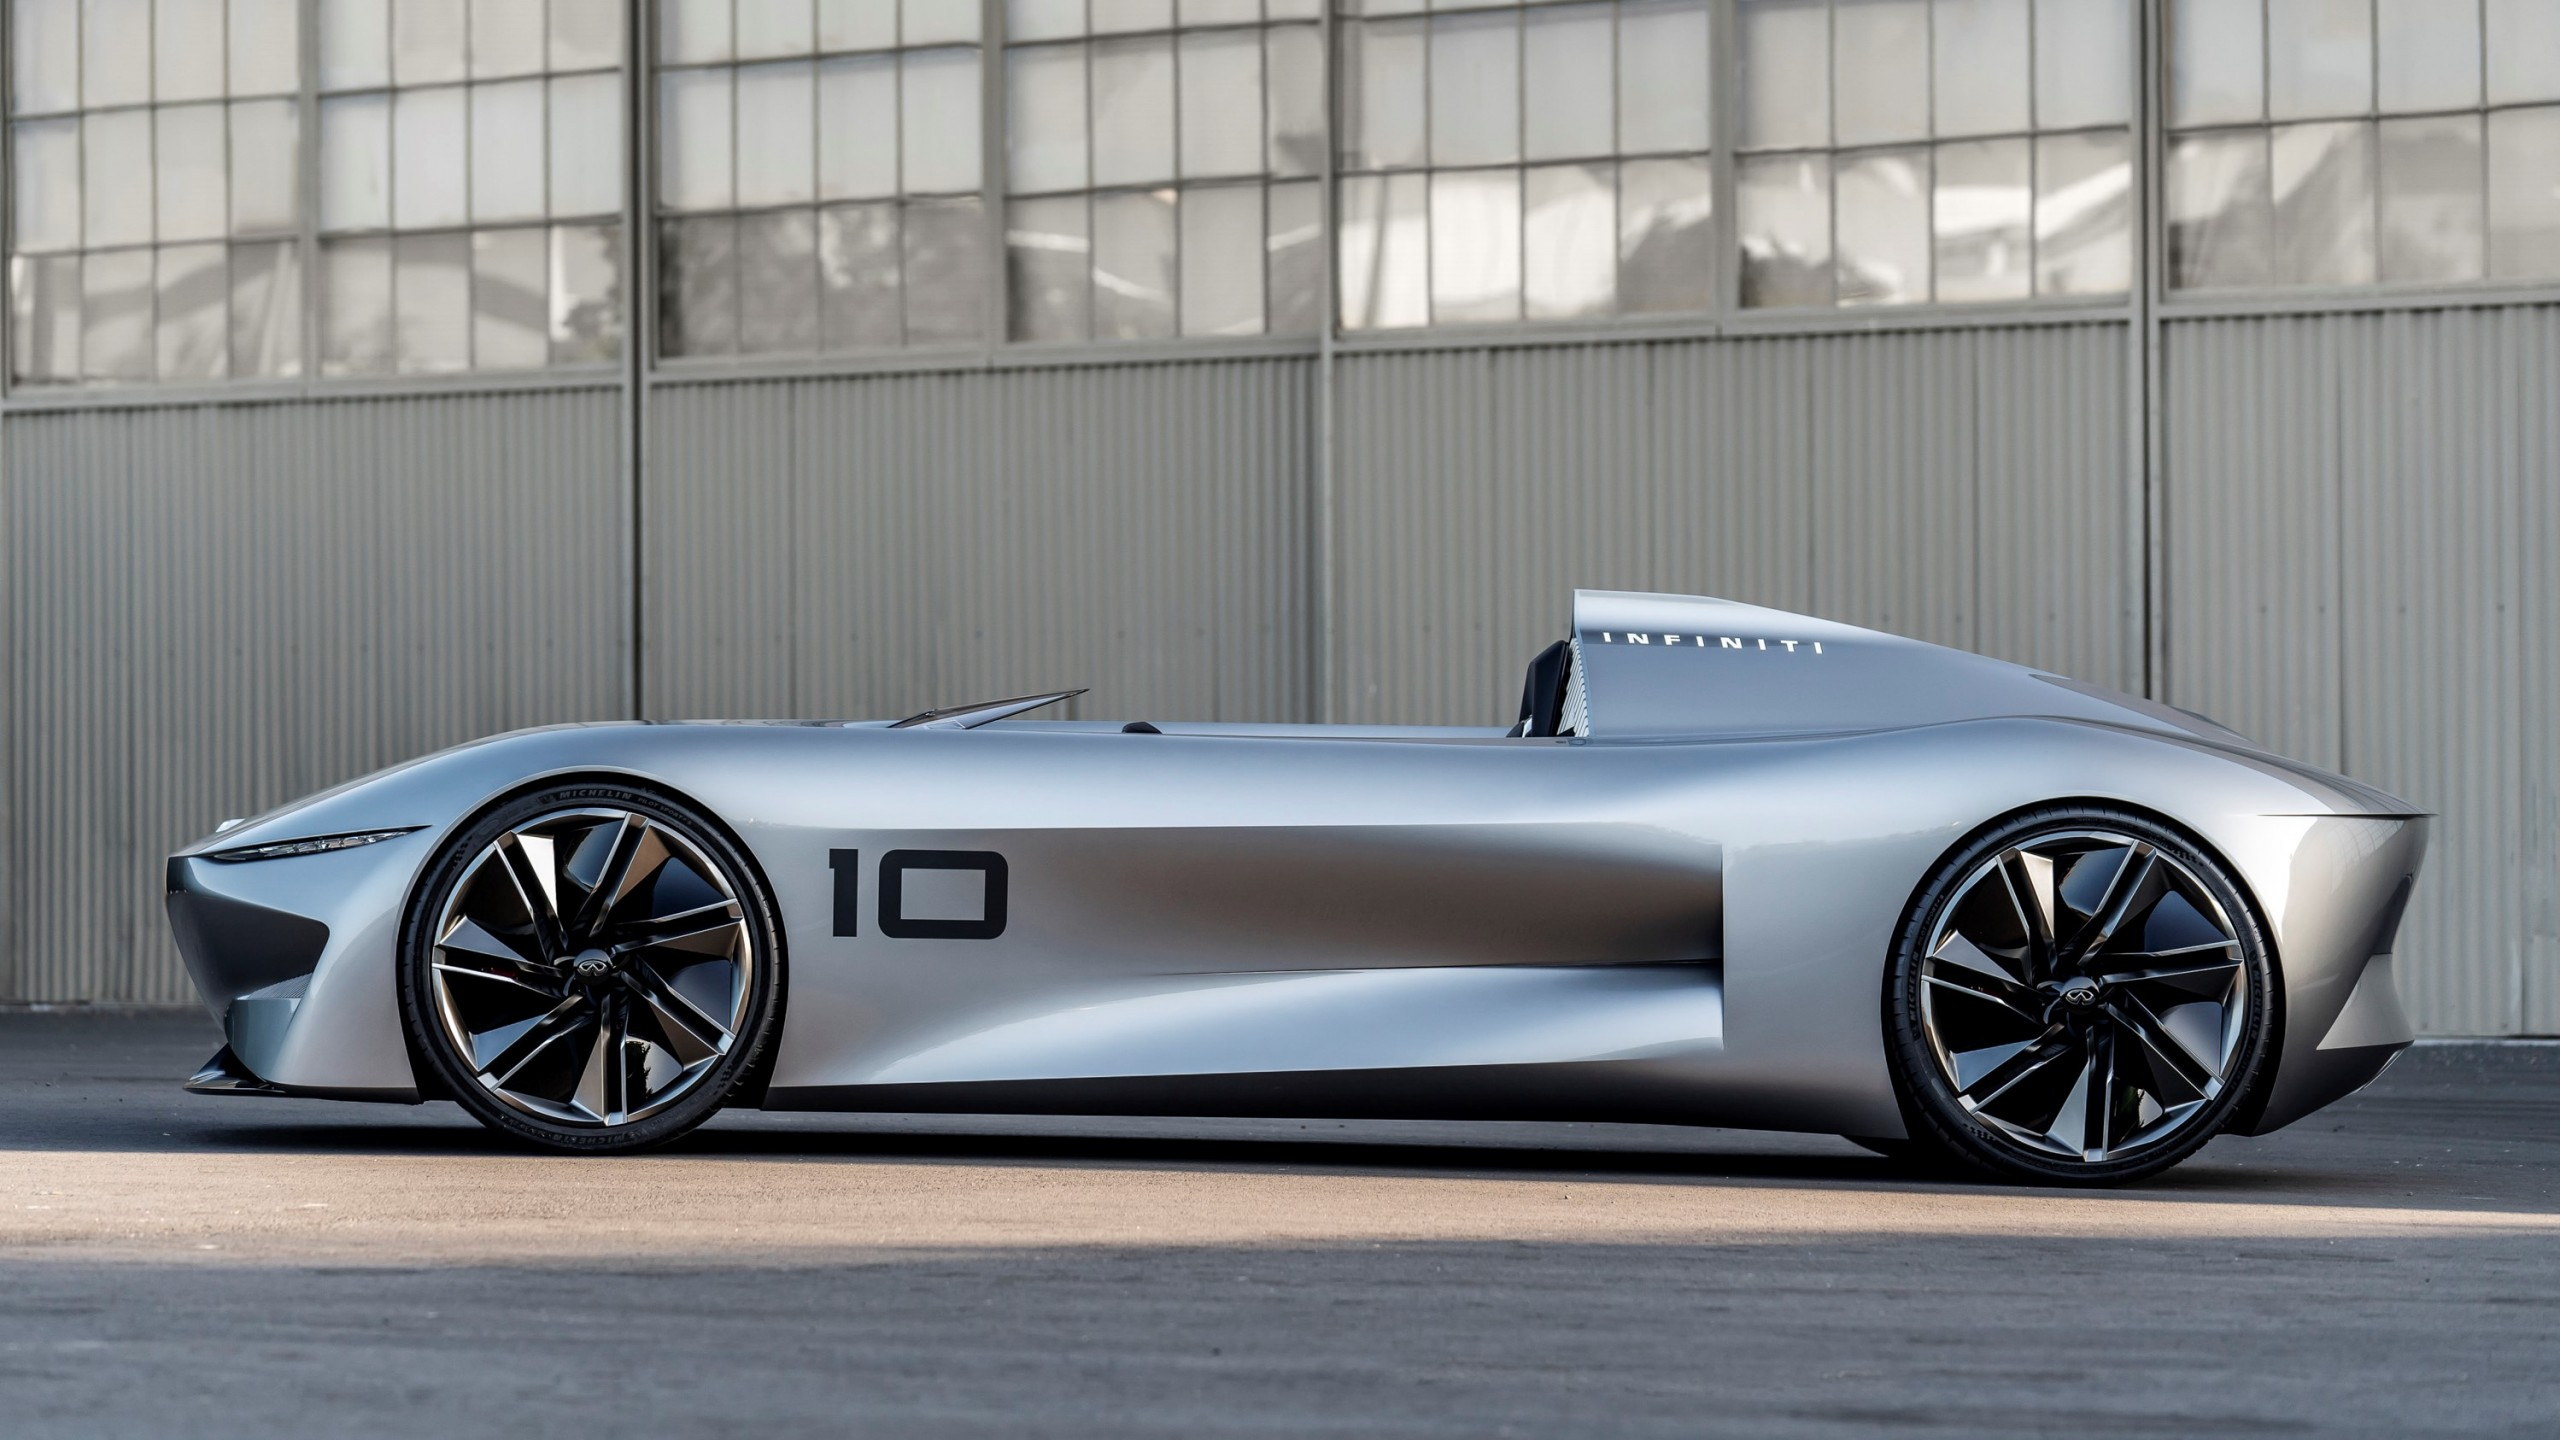 Wallpaper Infiniti Prototype 10 Concept, 2018 Cars